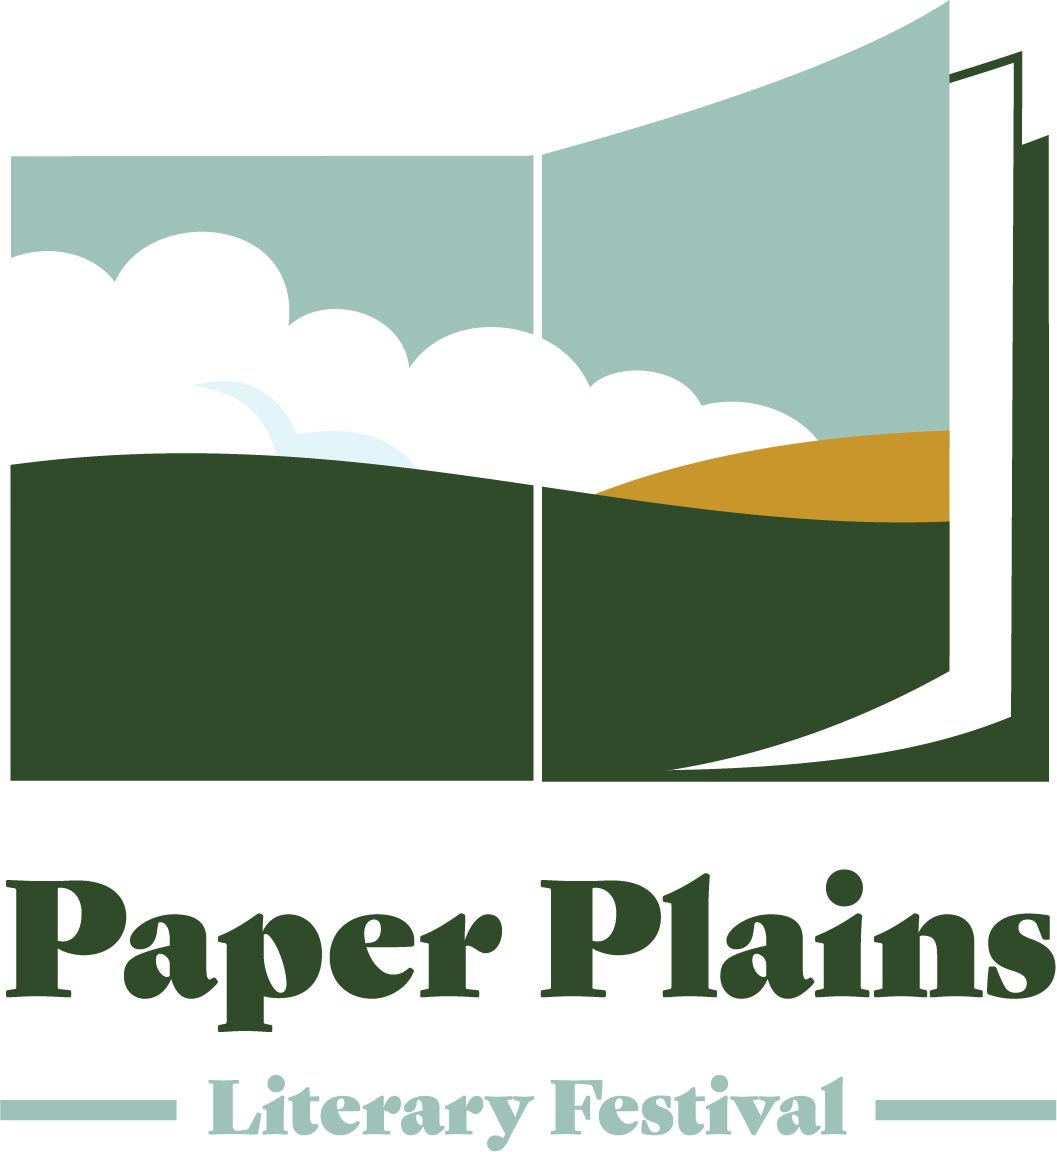 An illustrated open book with a cloudy horizon across the pages sits above the words 'Paper Plains Literary Festival'